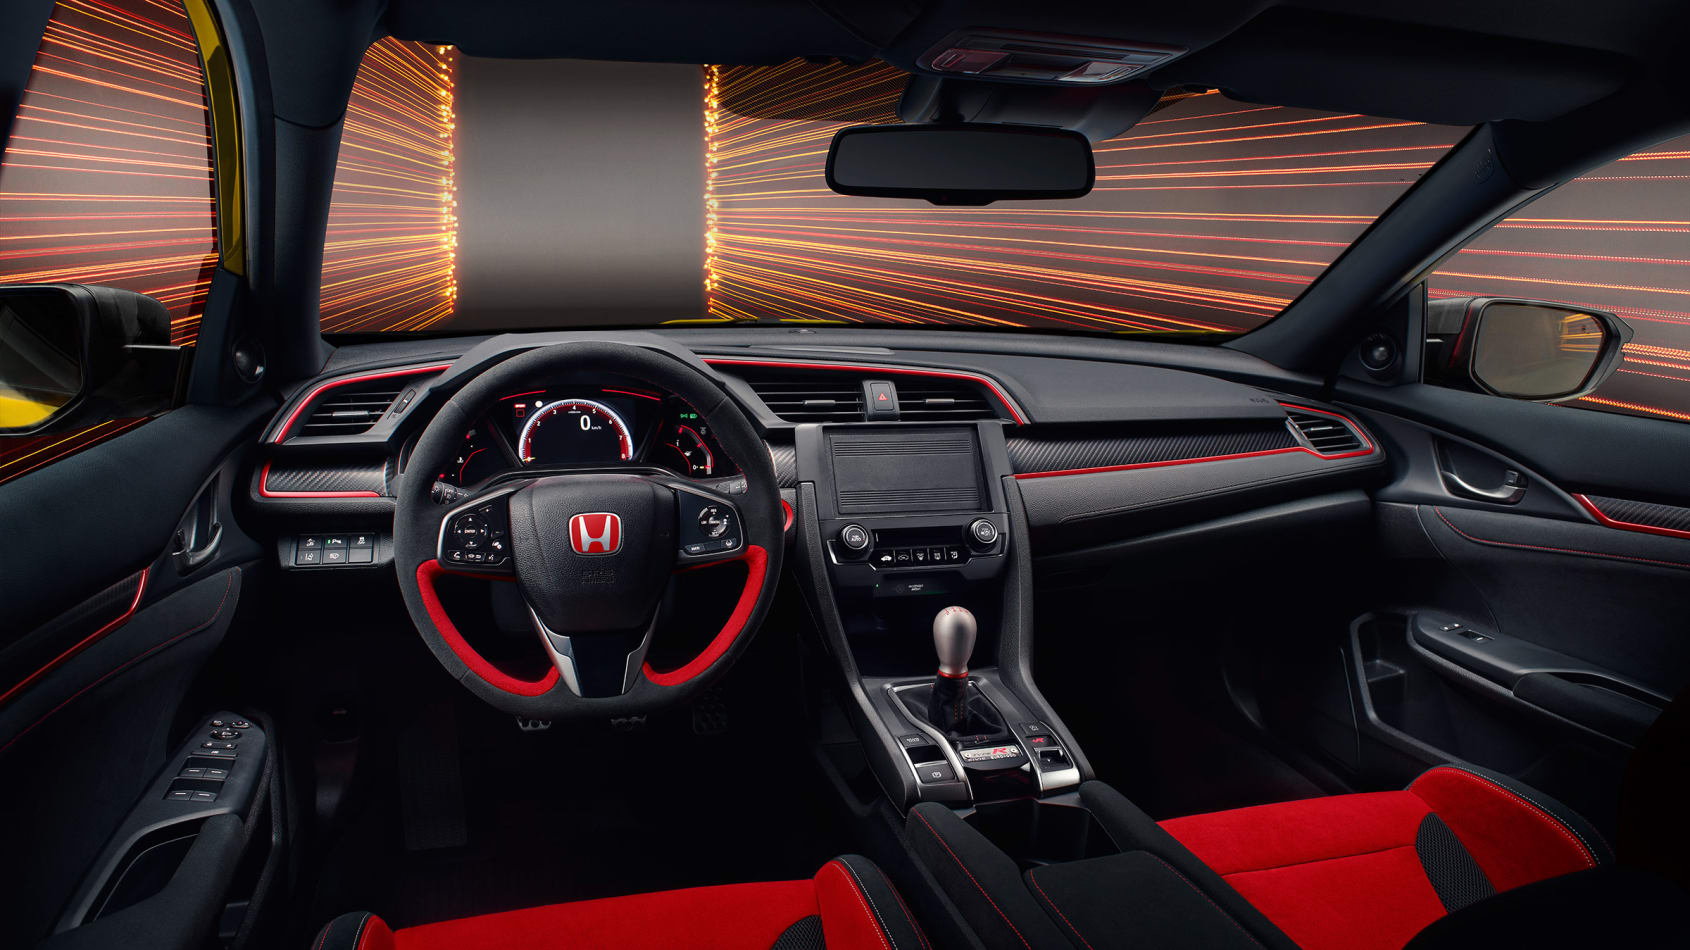 [Image: 8130_Type-R-Limited-Edition-Interior-%26...el.jpg.jpg]